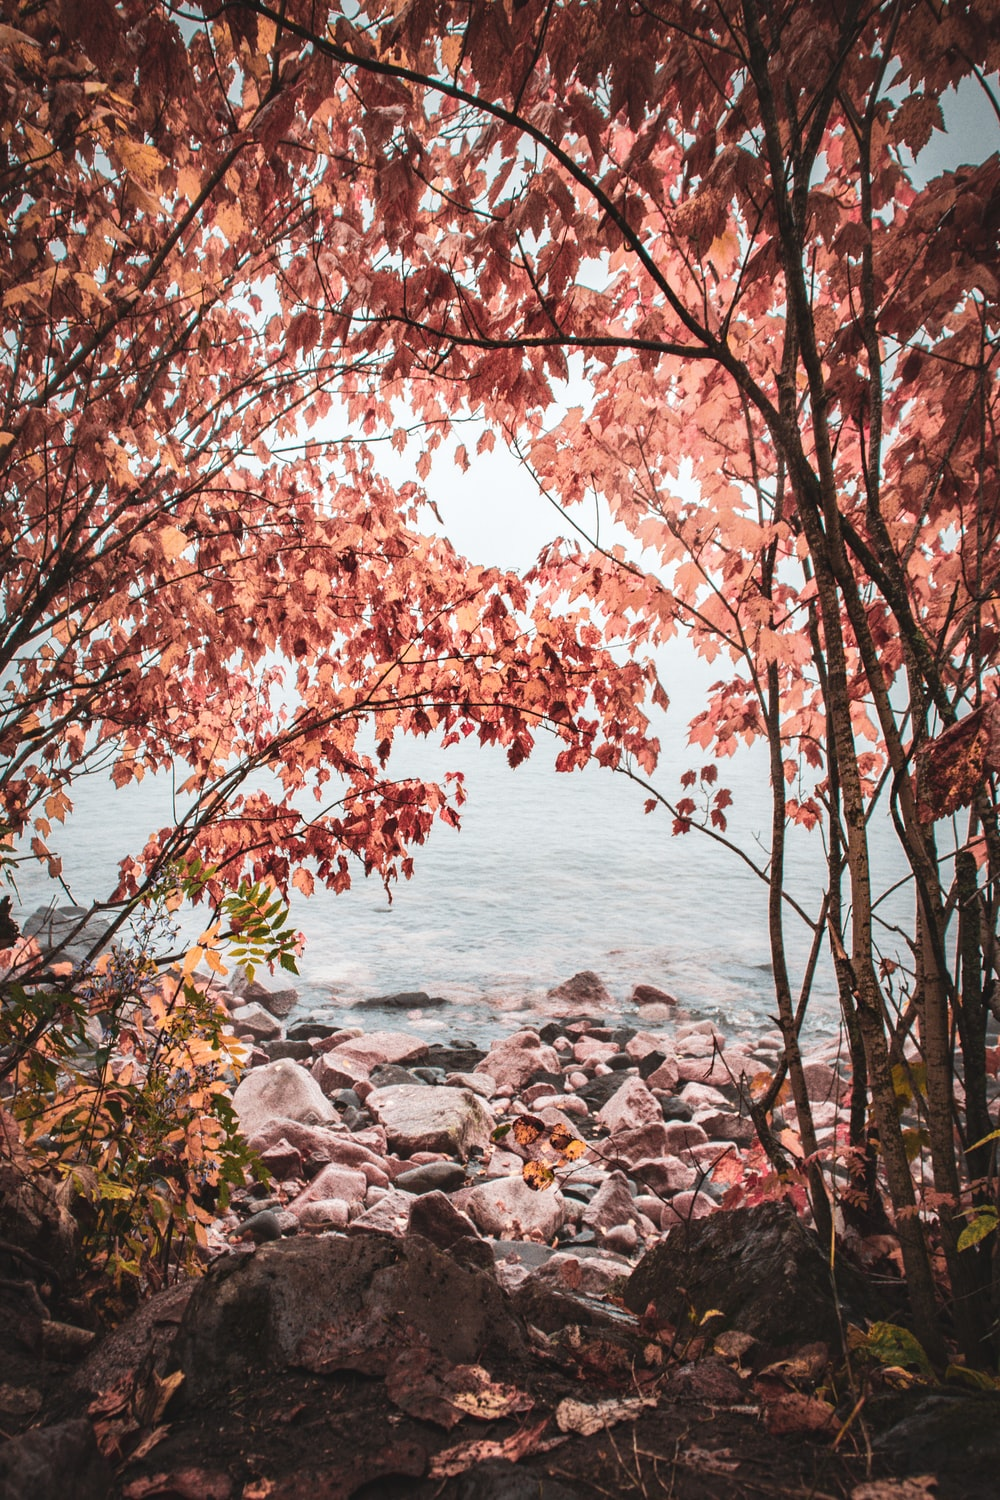 brown leaves tree near body of water during daytime